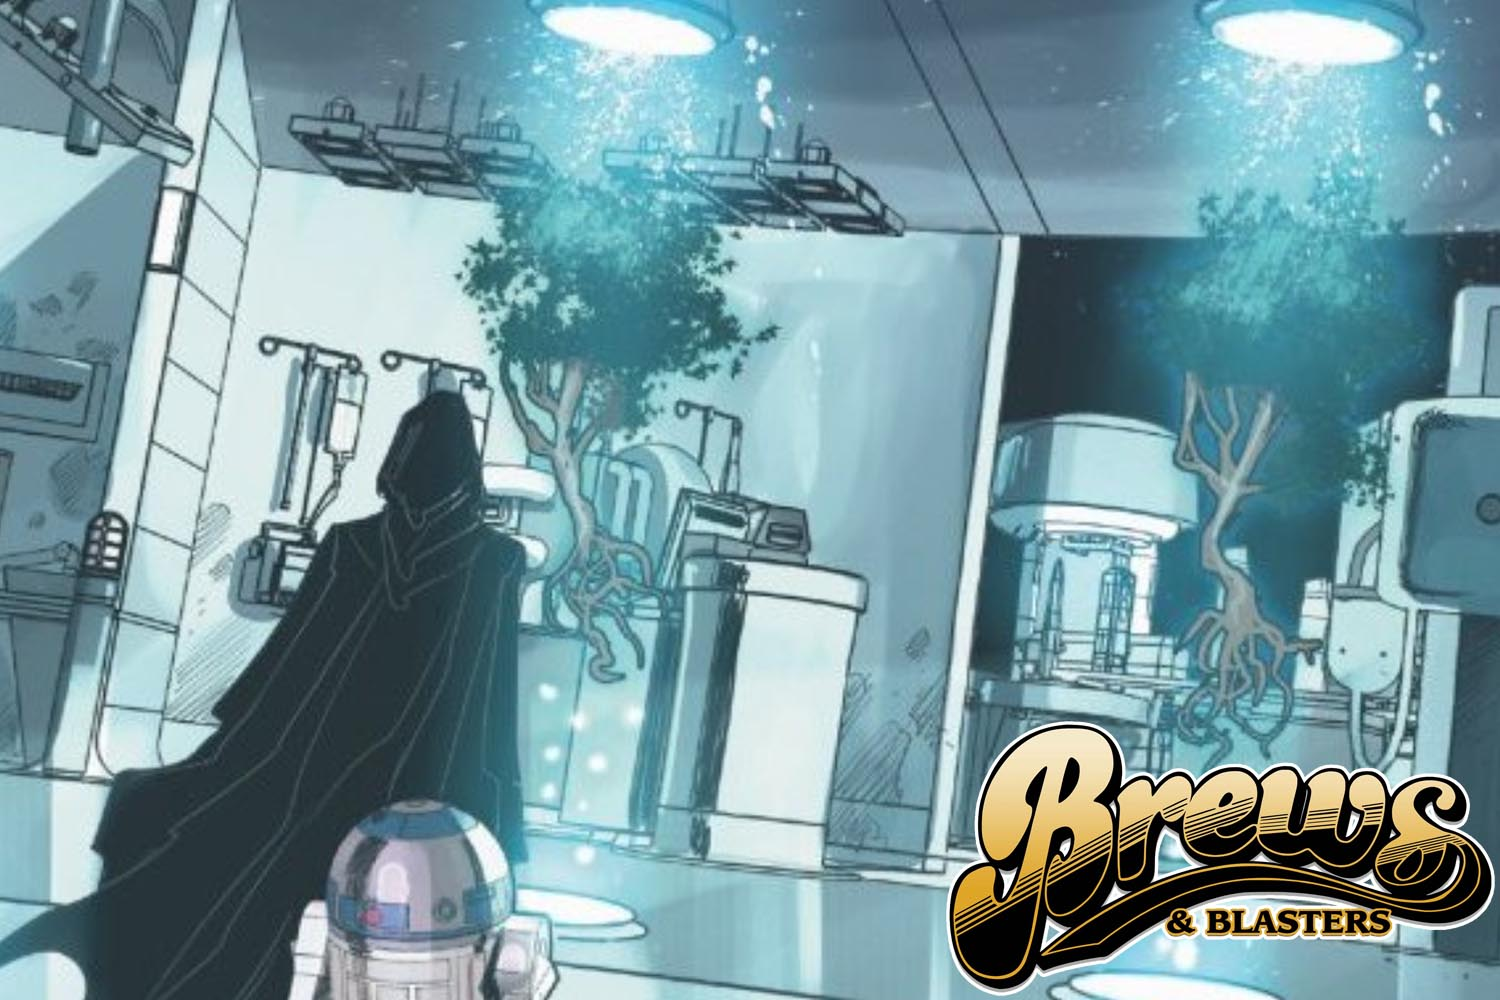 Brews and Blasters 160: Branching Out - Aside from a lot of Star Wars tree puns, we're branching out into the ephemera of the Star Wars galaxy you need to know about.